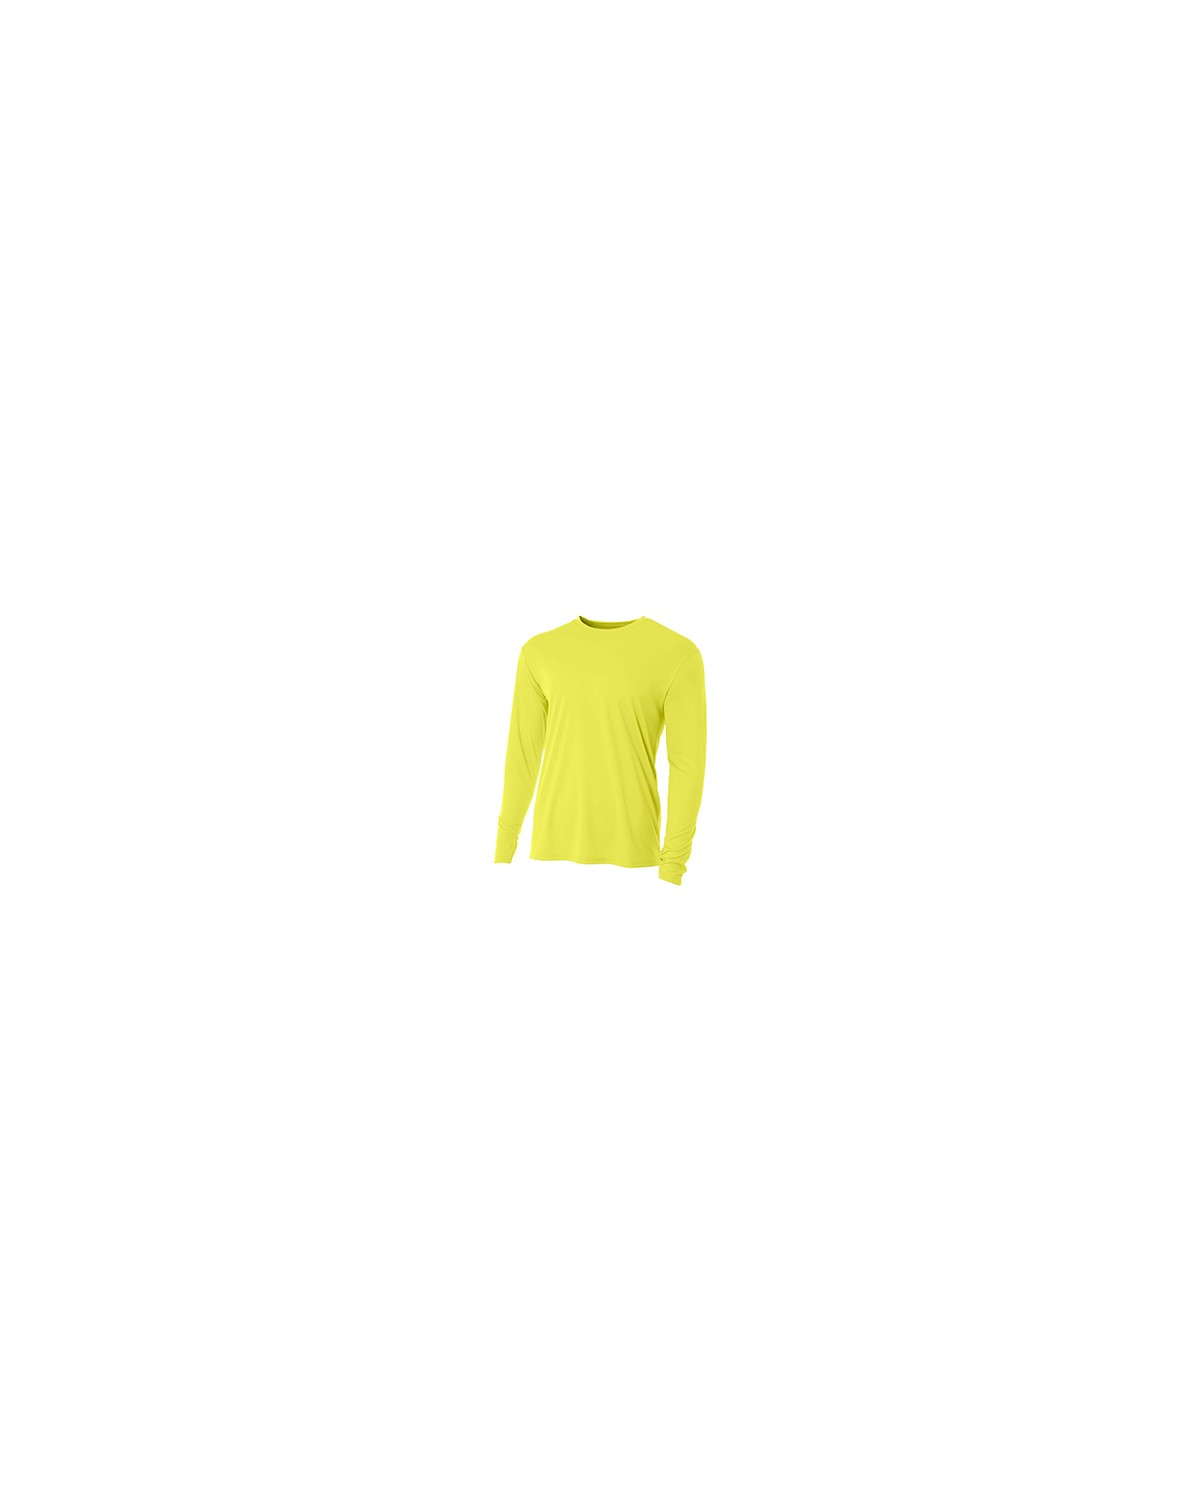 N3165 A4 SAFETY YELLOW